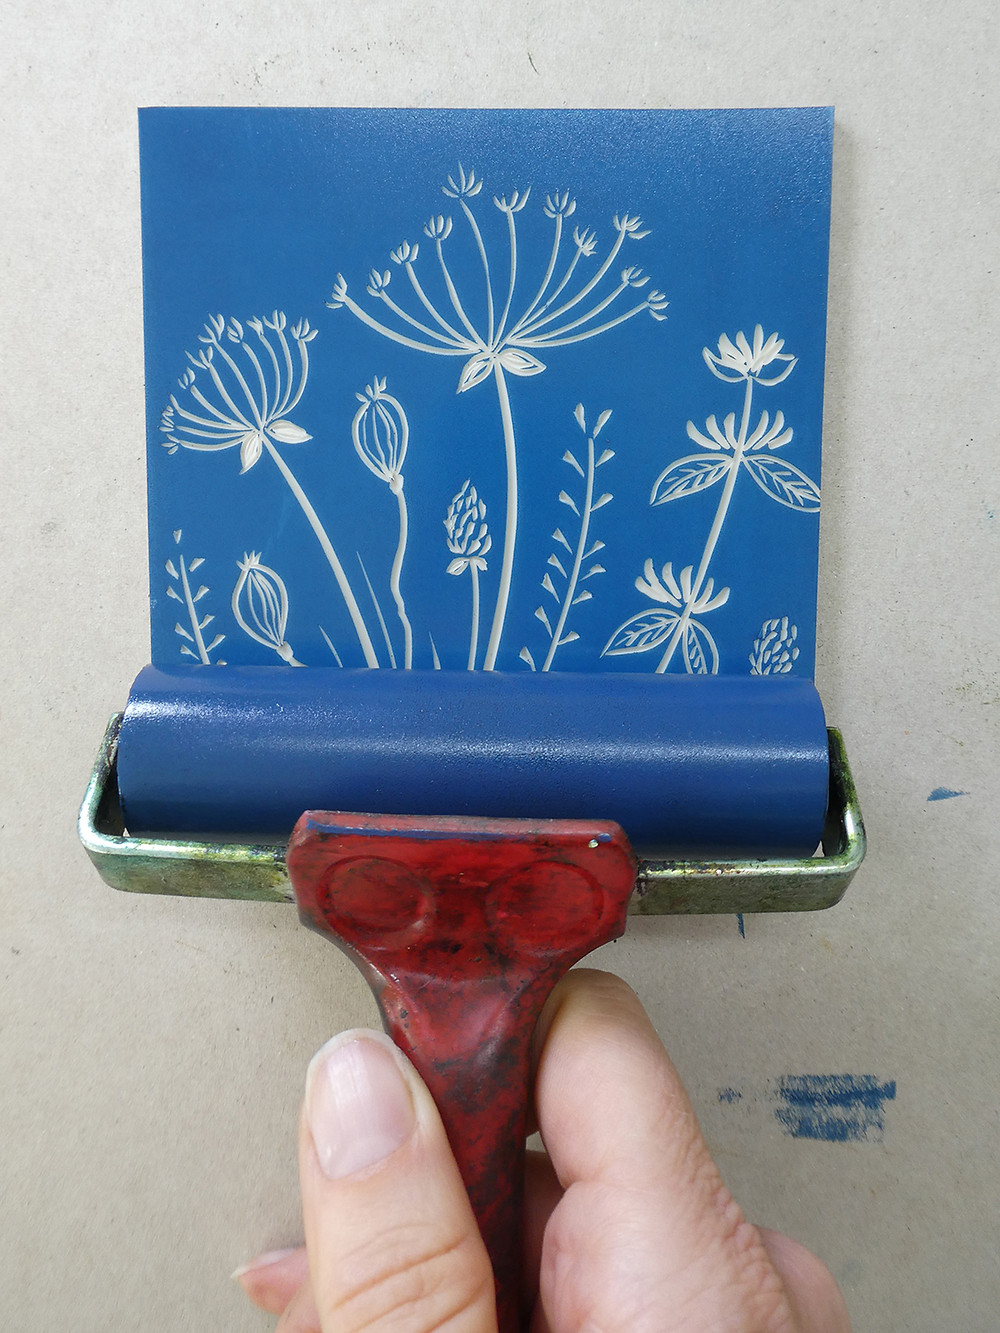 Rolling ink onto the lino block using water based inks